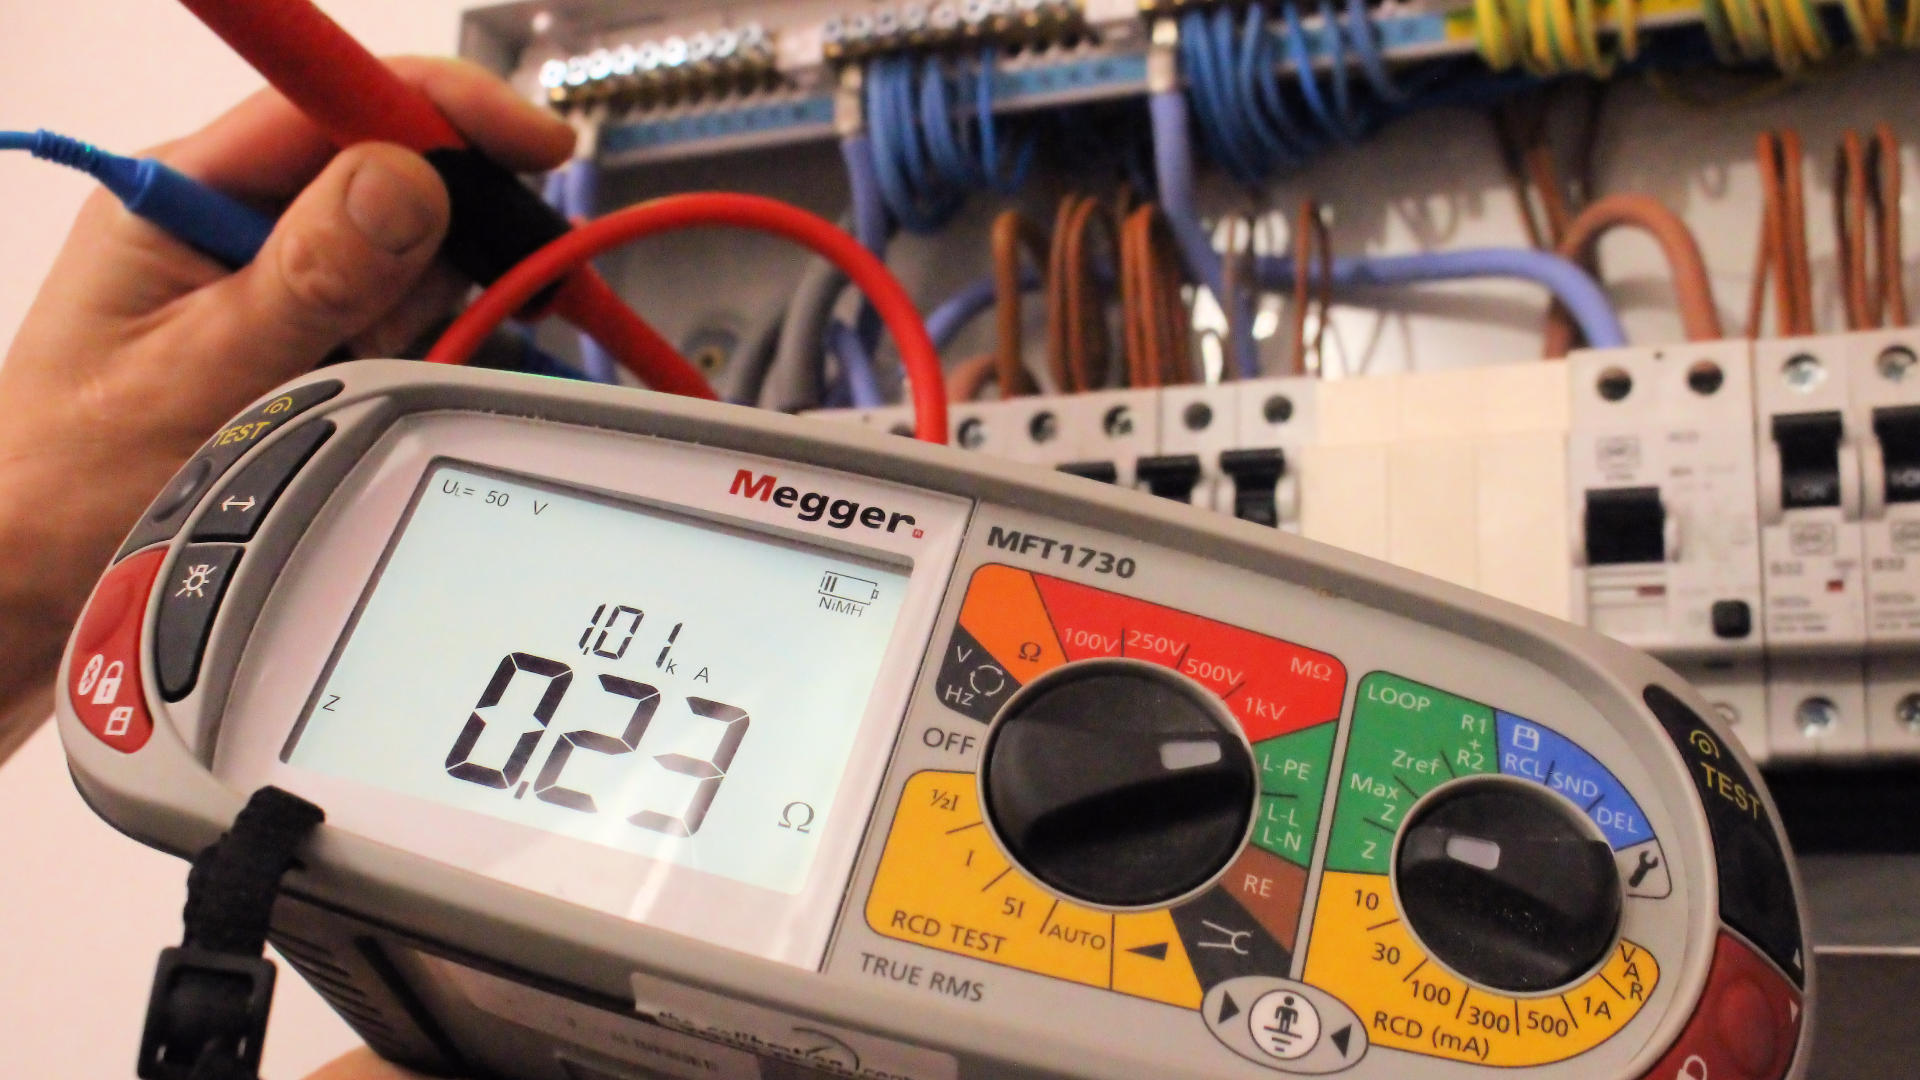 Rewire Exeters Electrician